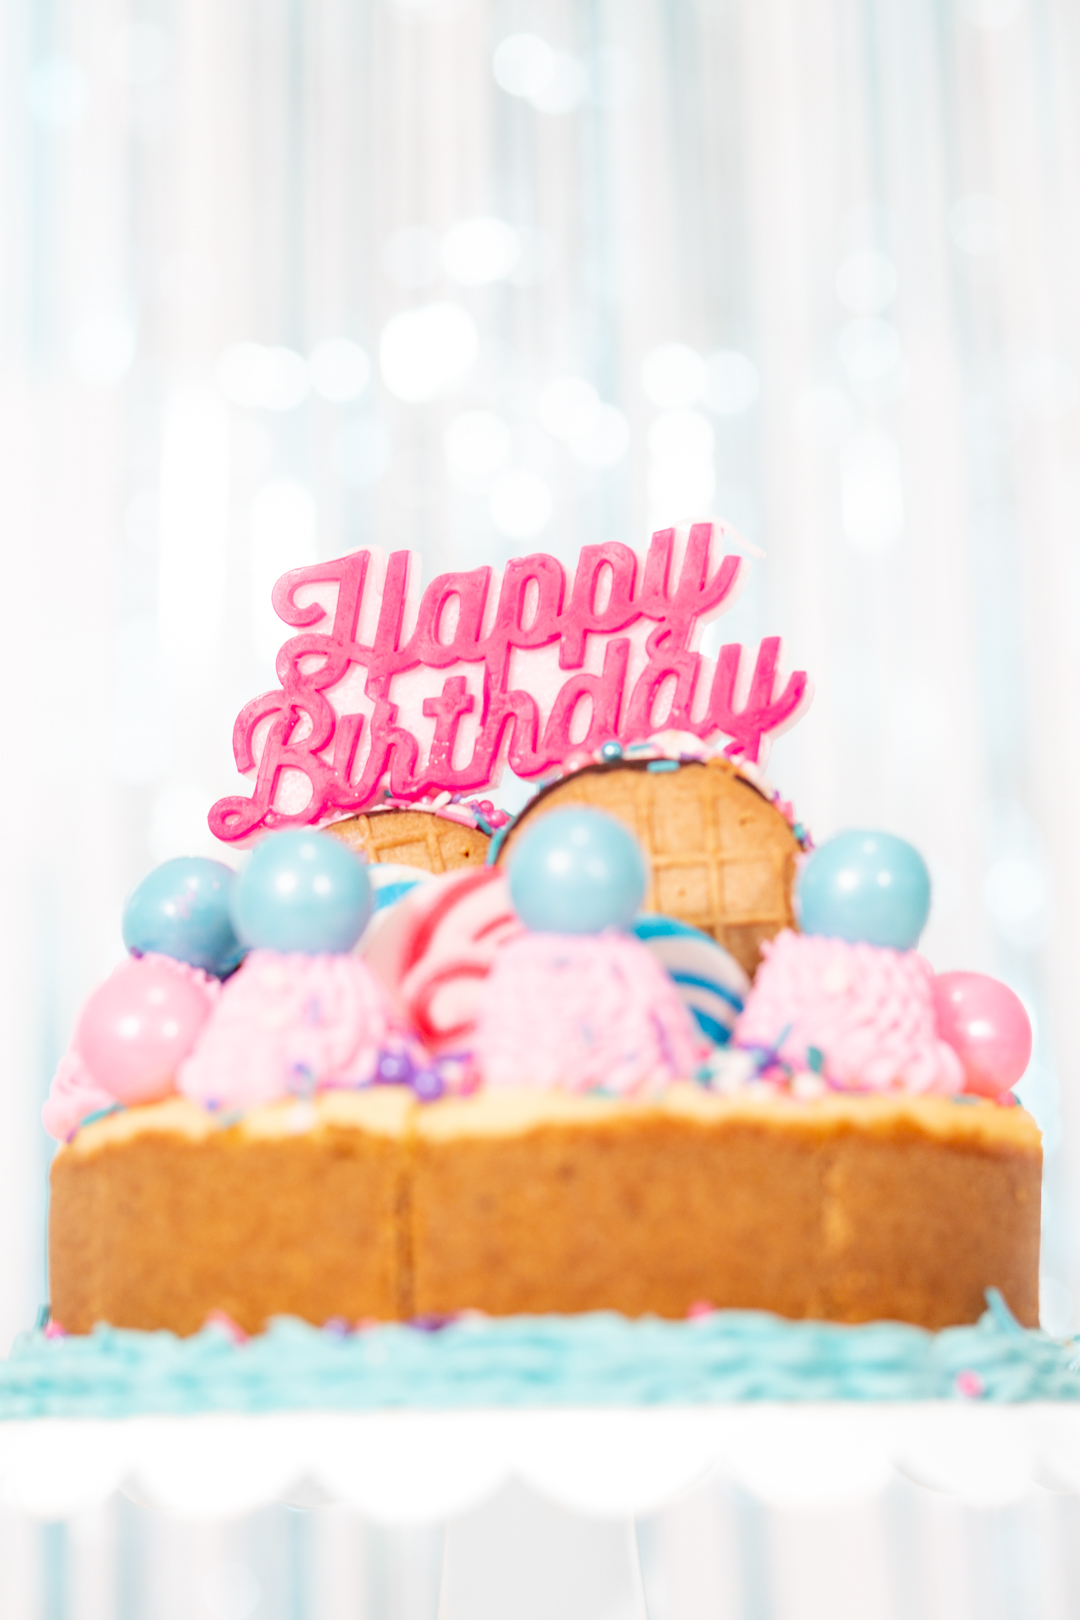 pretty birthday cheesecake with pink and blue cake toppings from lollipops to gumballs